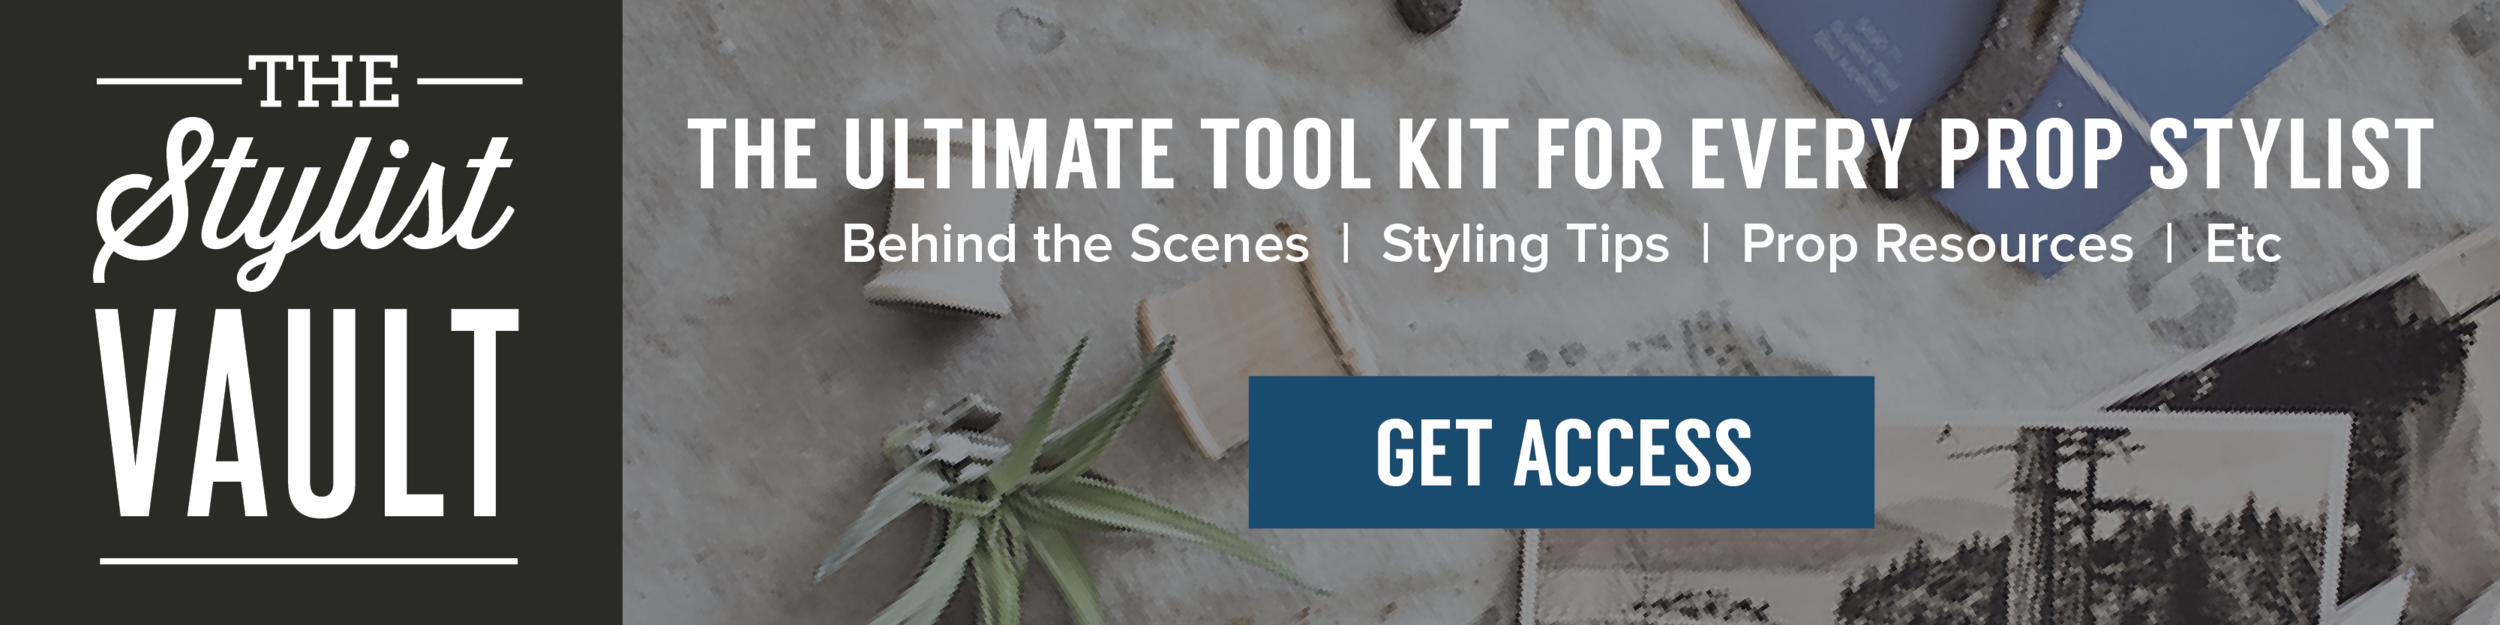 The Stylist Vault: The Ultimate Tool Kit For Every Prop Stylist | Planq Studio | resource library, freebies, styling tips, photo styling, prop styling, brand photography, visual marketing